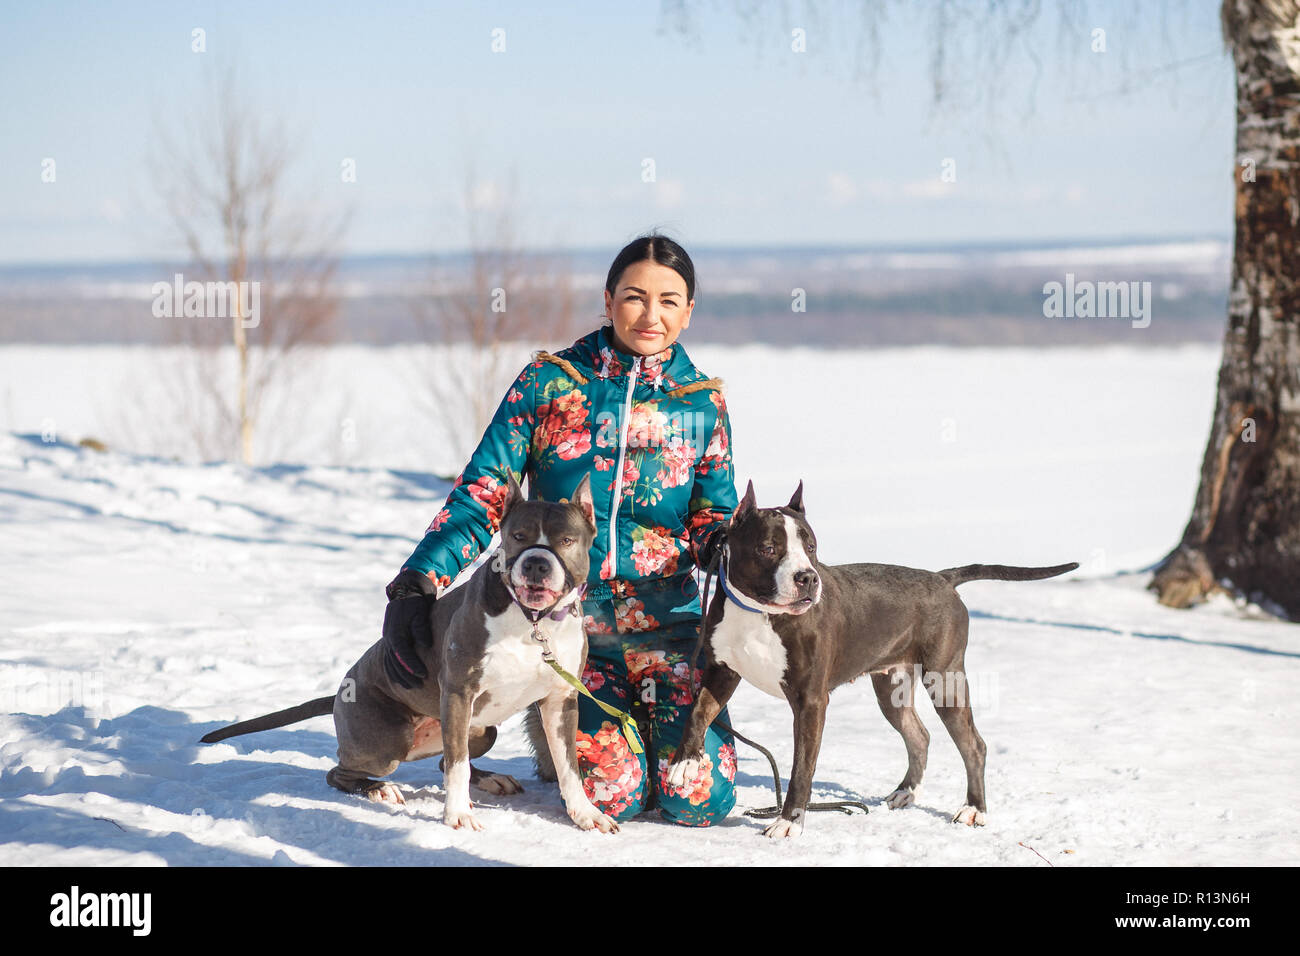 Happy young woman owner and her two American Staffordshire Terriers are hugging on the snow in winter park. - Stock Image